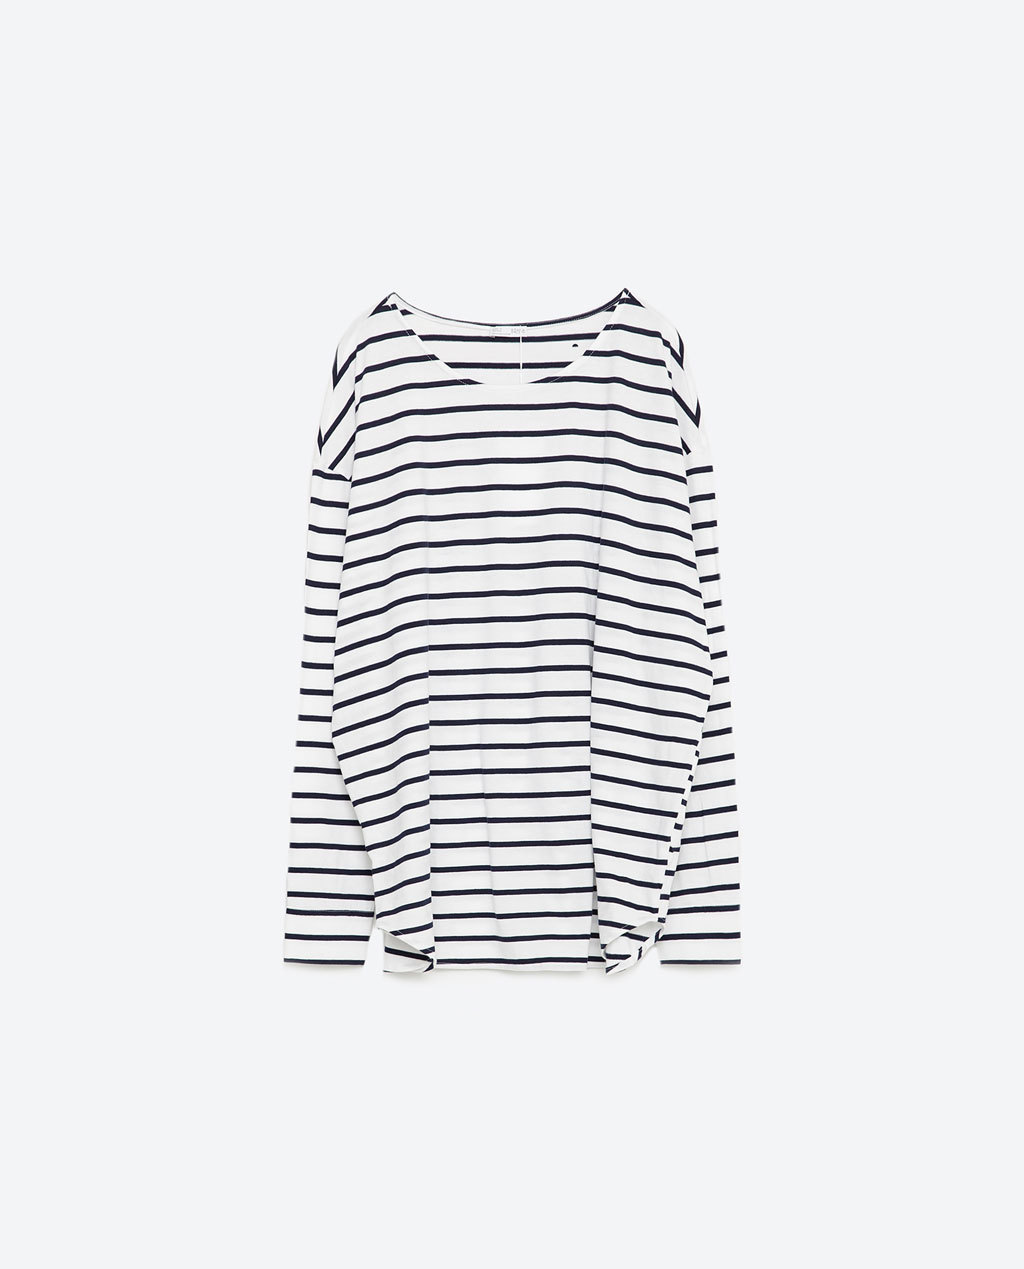 Oversized Top - sleeve style: dolman/batwing; pattern: horizontal stripes; length: below the bottom; secondary colour: white; predominant colour: royal blue; occasions: casual; style: top; fibres: cotton - 100%; fit: straight cut; neckline: crew; sleeve length: long sleeve; pattern type: fabric; pattern size: standard; texture group: jersey - stretchy/drapey; season: s/s 2016; wardrobe: highlight